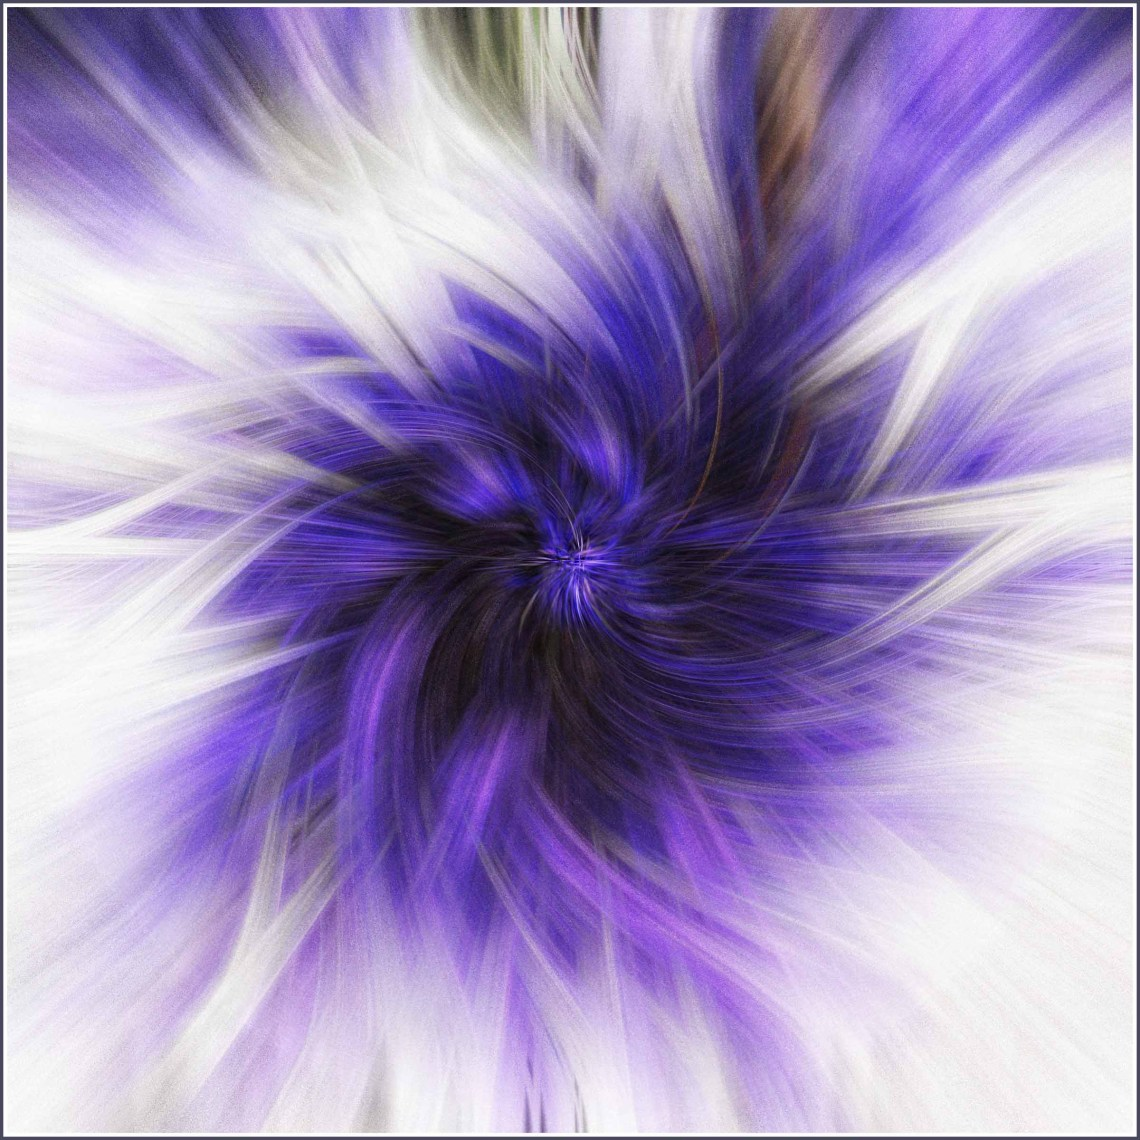 Blue and white twirl effect image